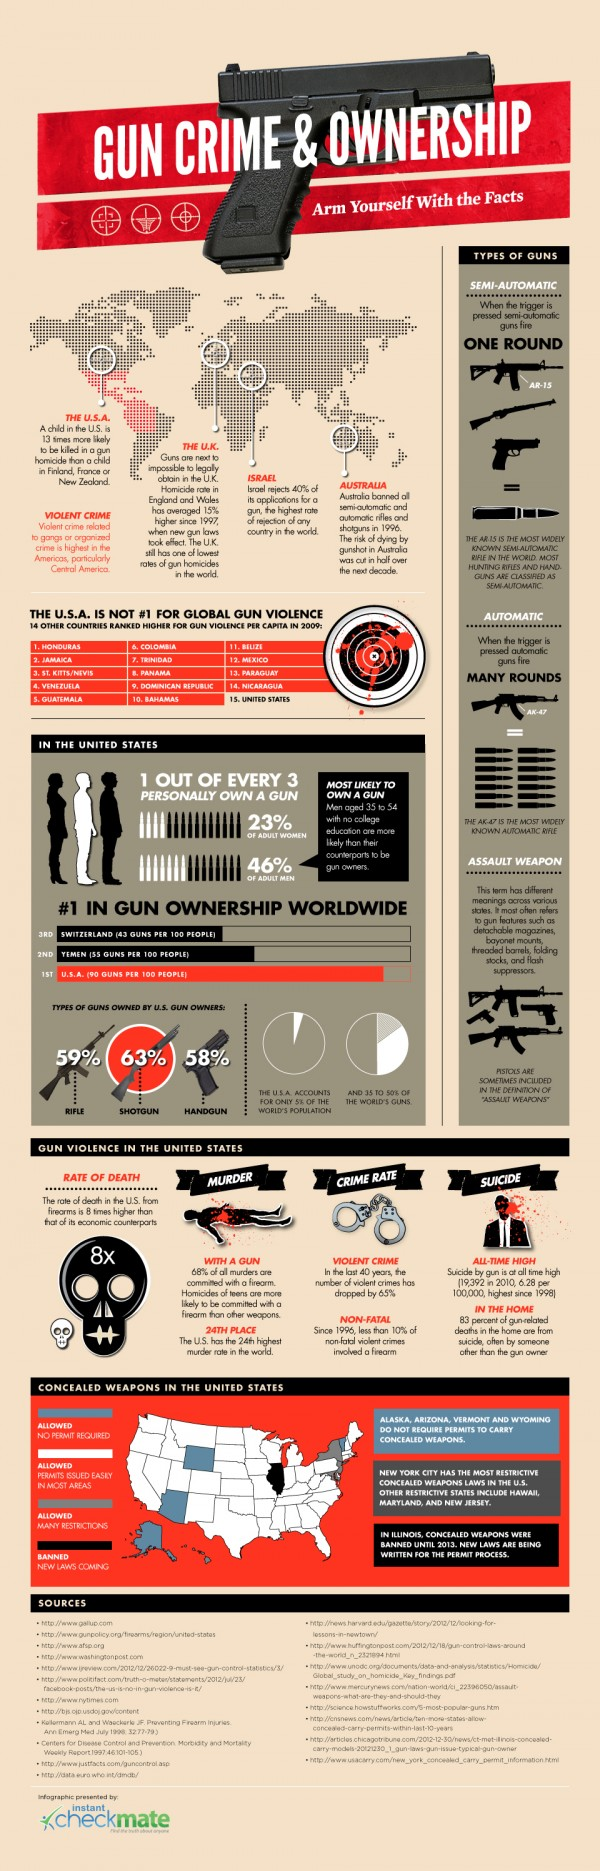 gun-crime-ownership-stats-infographic